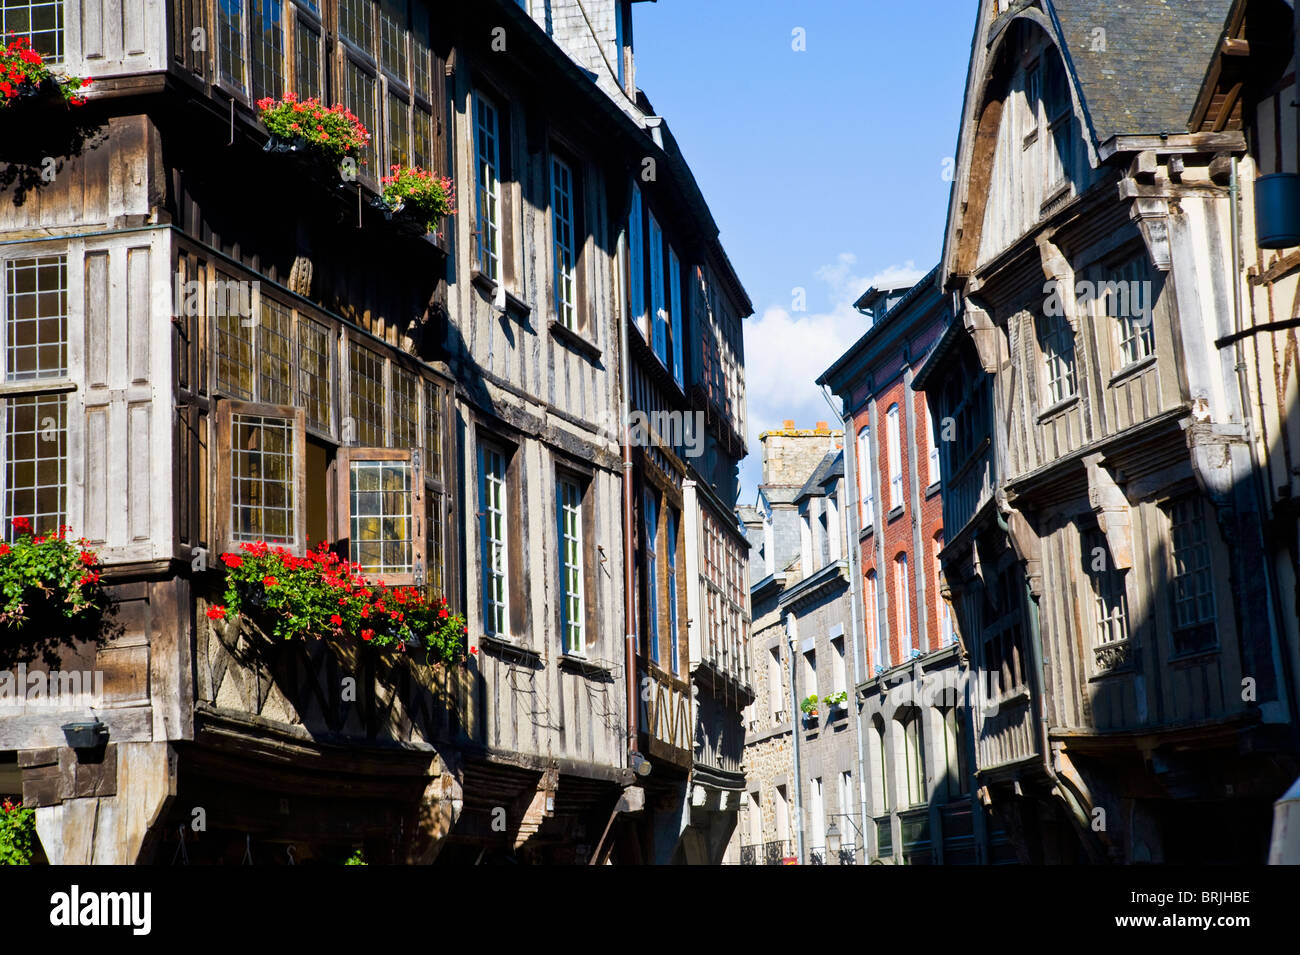 Buildings, Dinan, Brittany, France Stock Photo